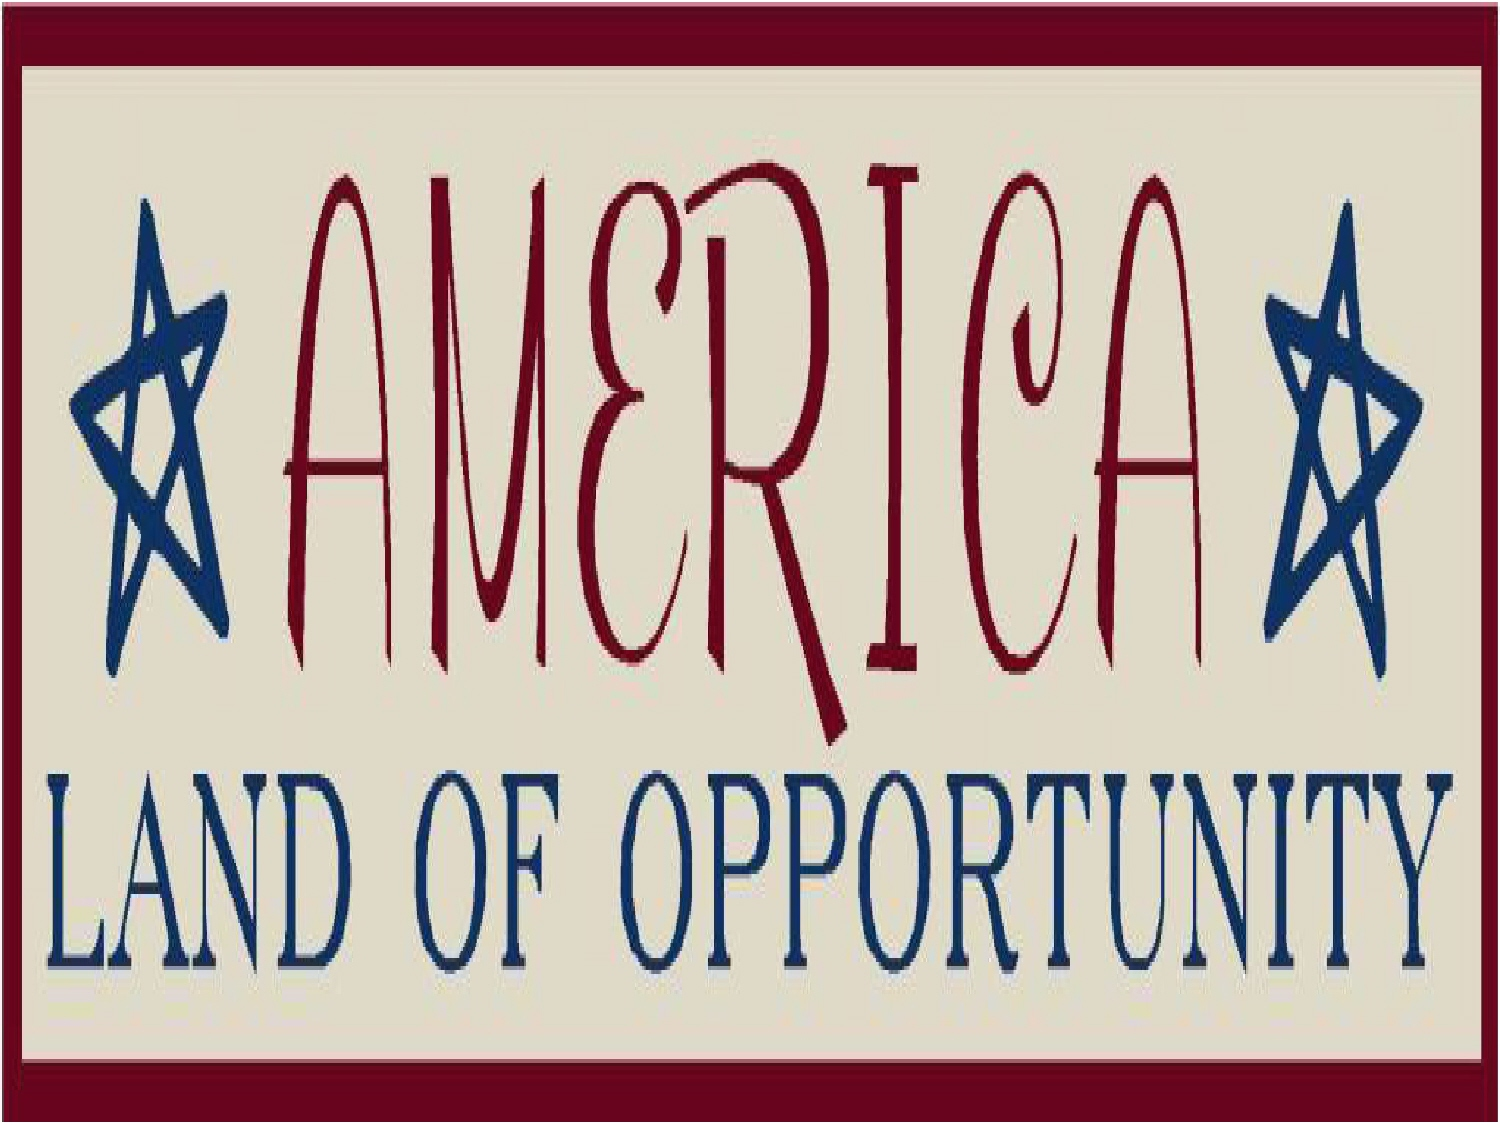 usa land of opportunity essay Did you grow up believing that america was the land of opportunity, that if you stayed in school and graduated, worked hard and played by the rules you could get ahead.